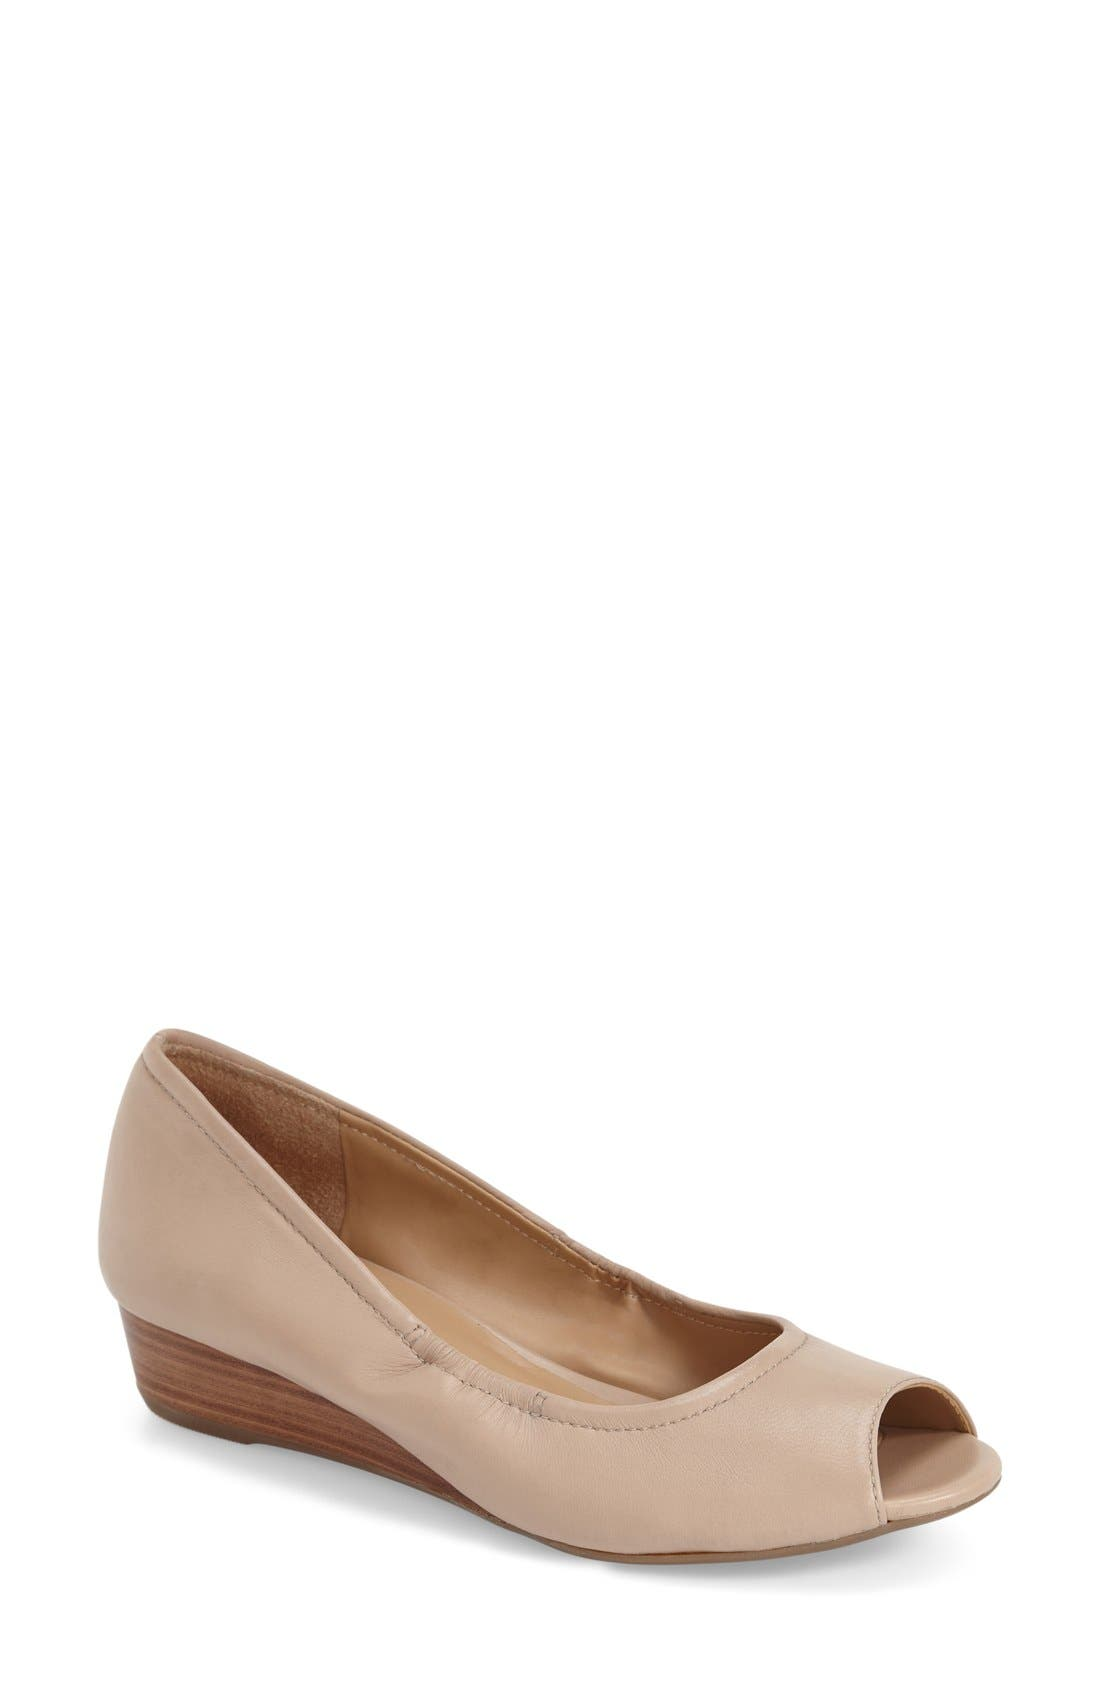 Naturalizer 'Contrast' Peep Toe Wedge